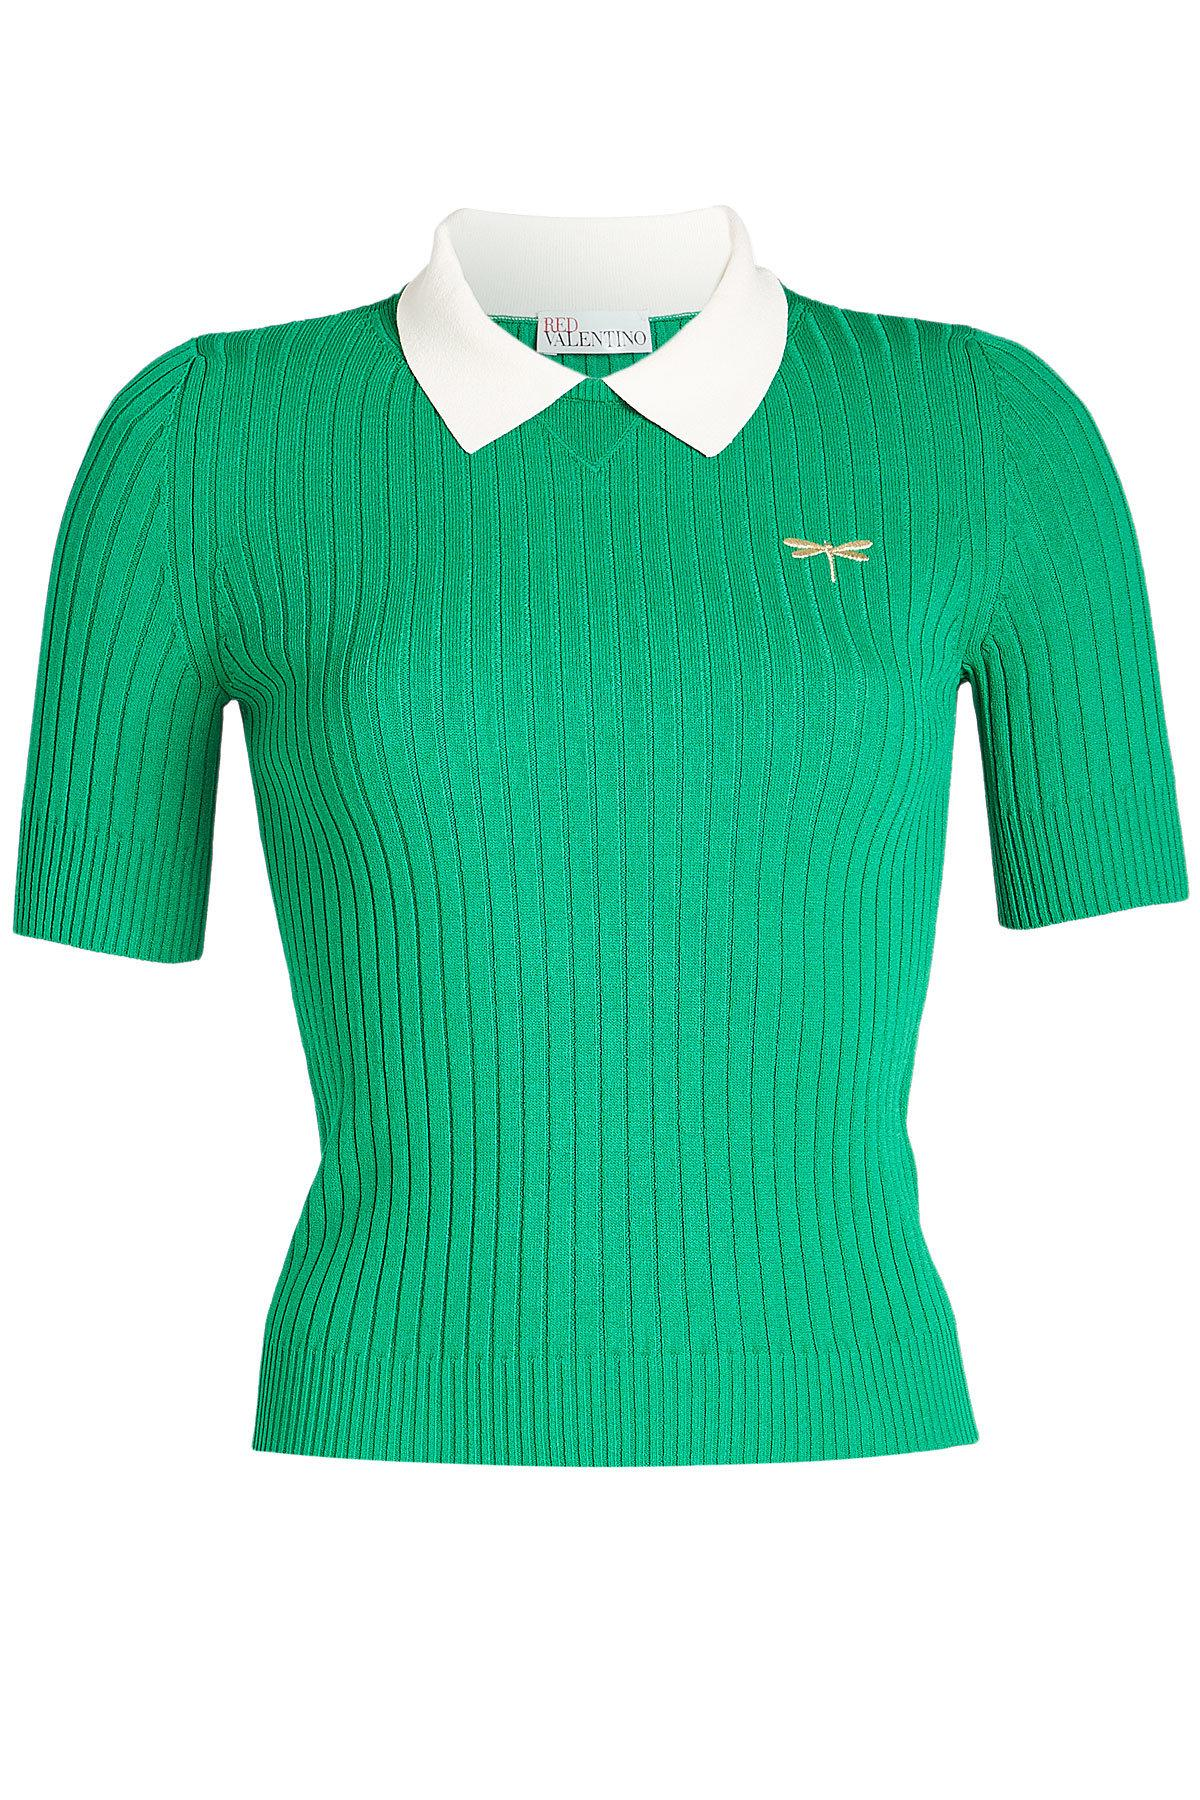 Red Valentino Ribbed Knit Top In Green